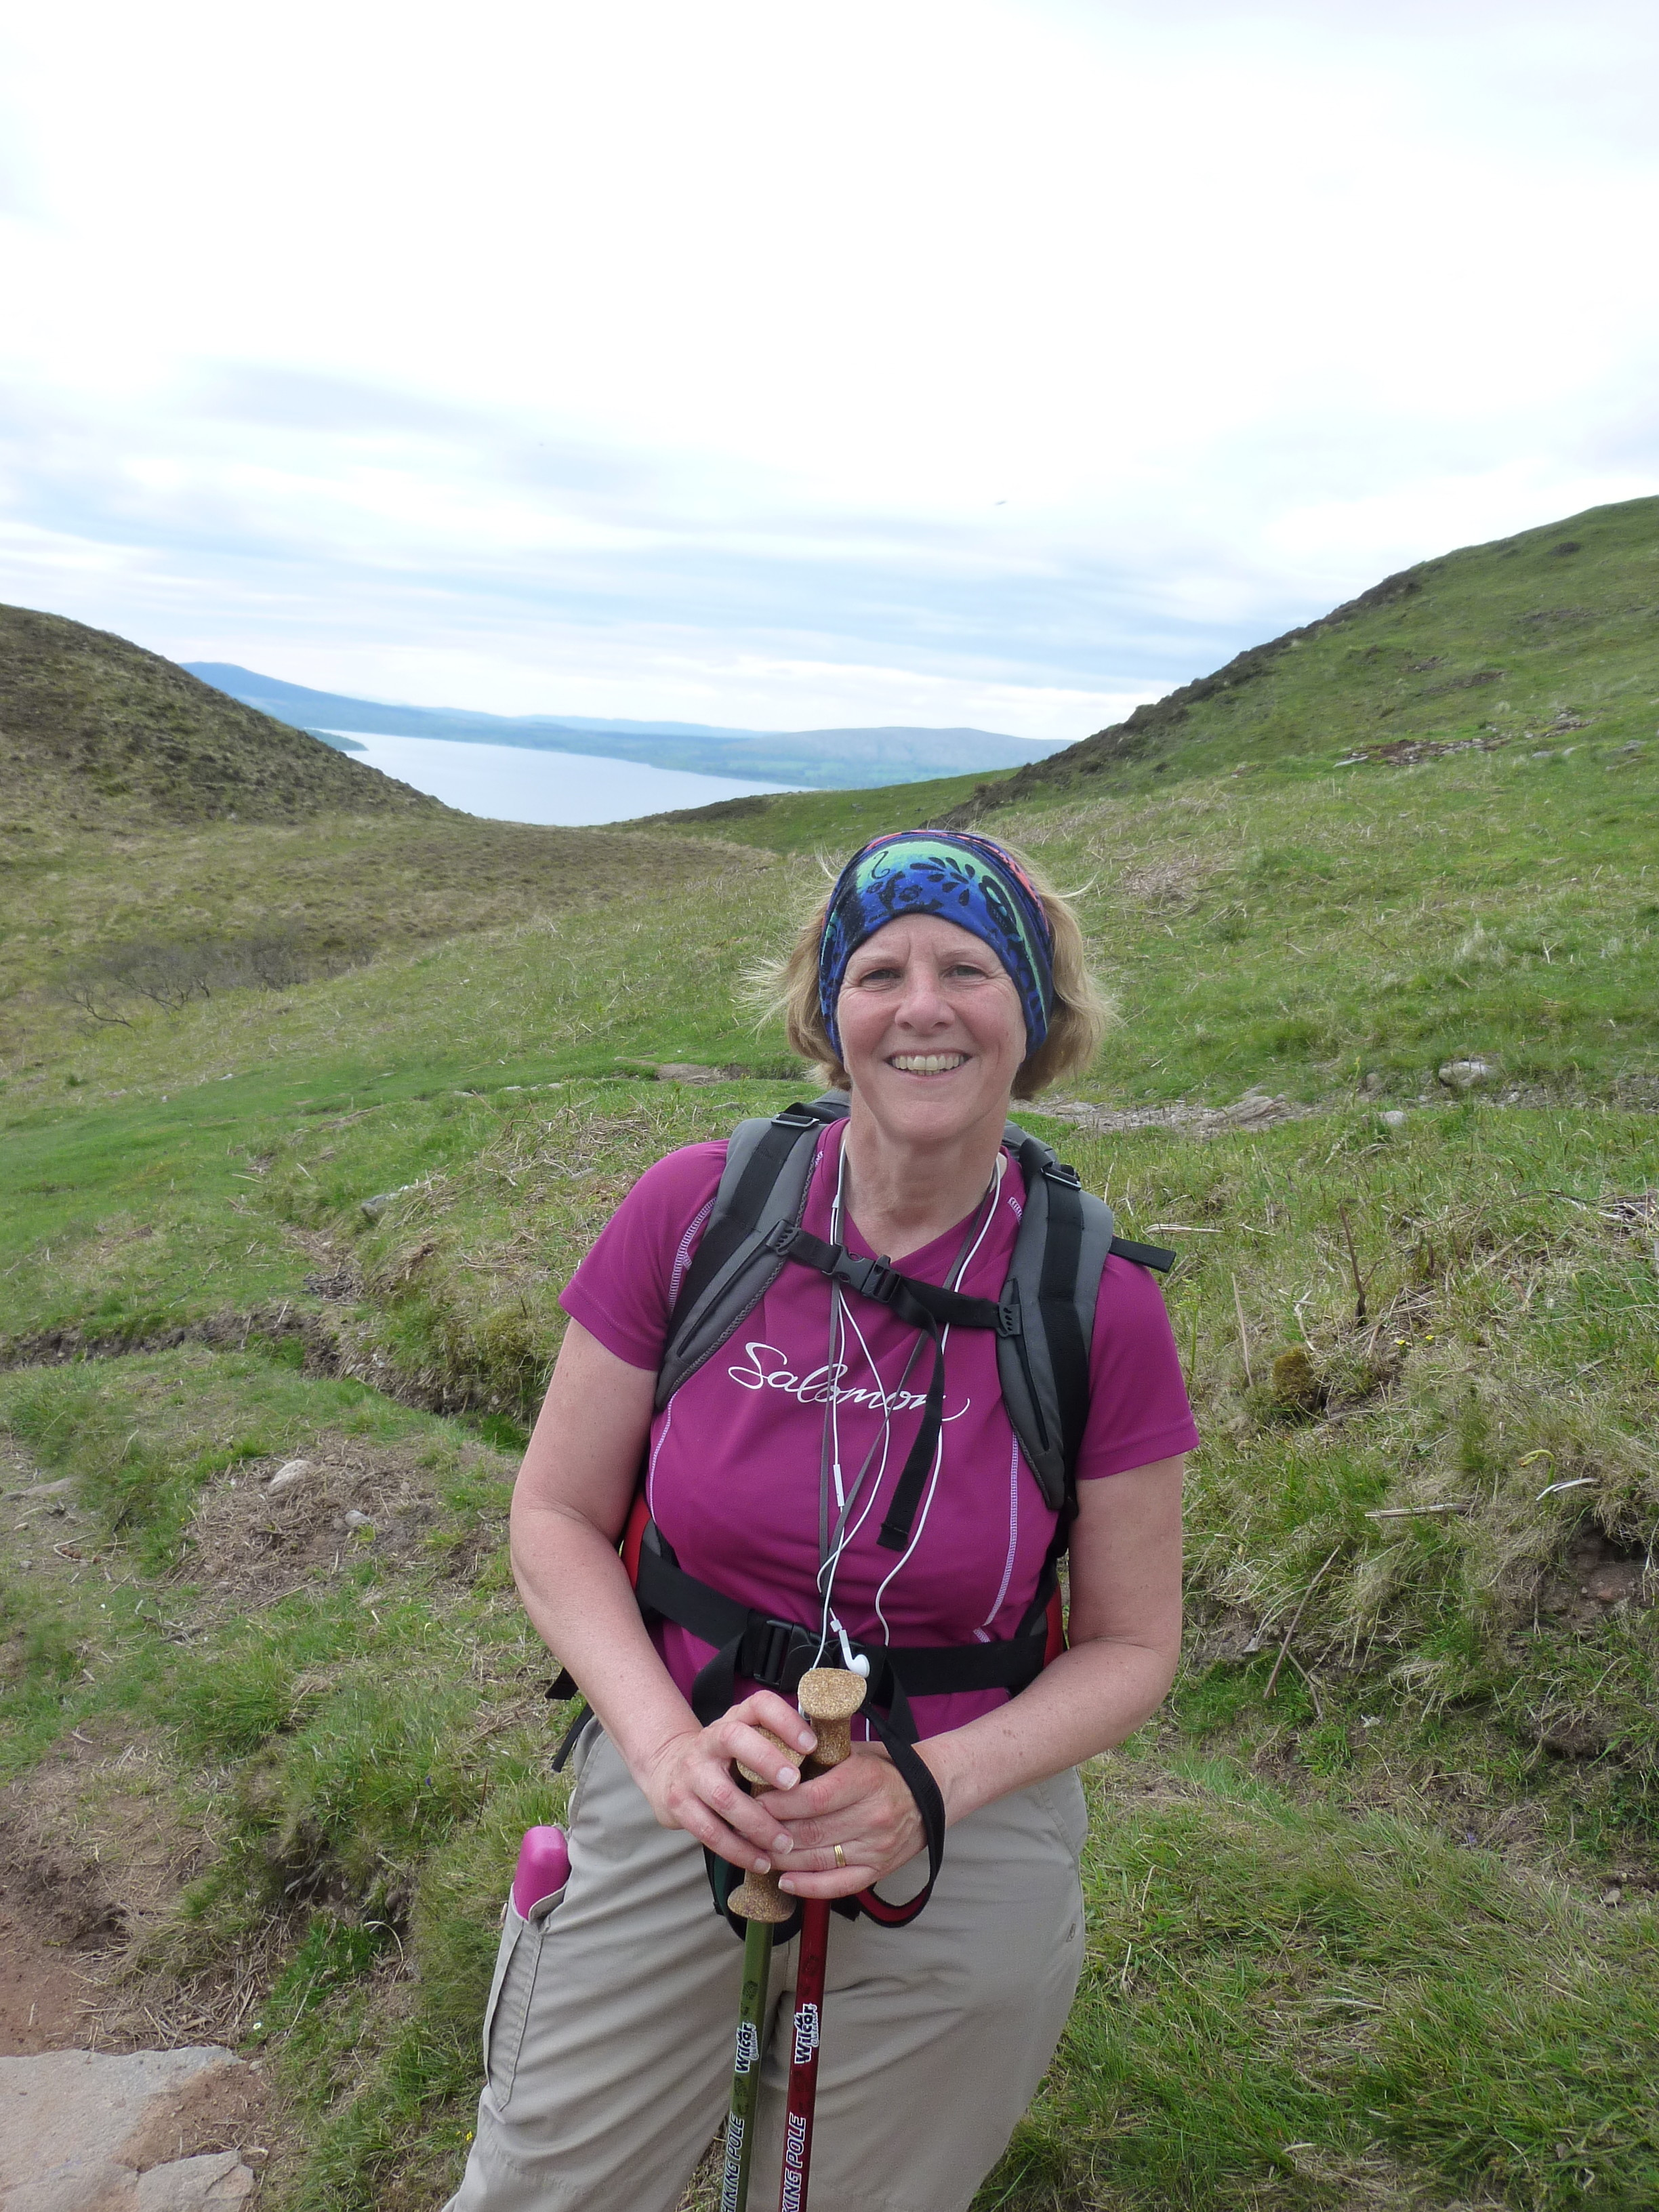 Me with Loch Lomond in the background just part way up this amazing hill